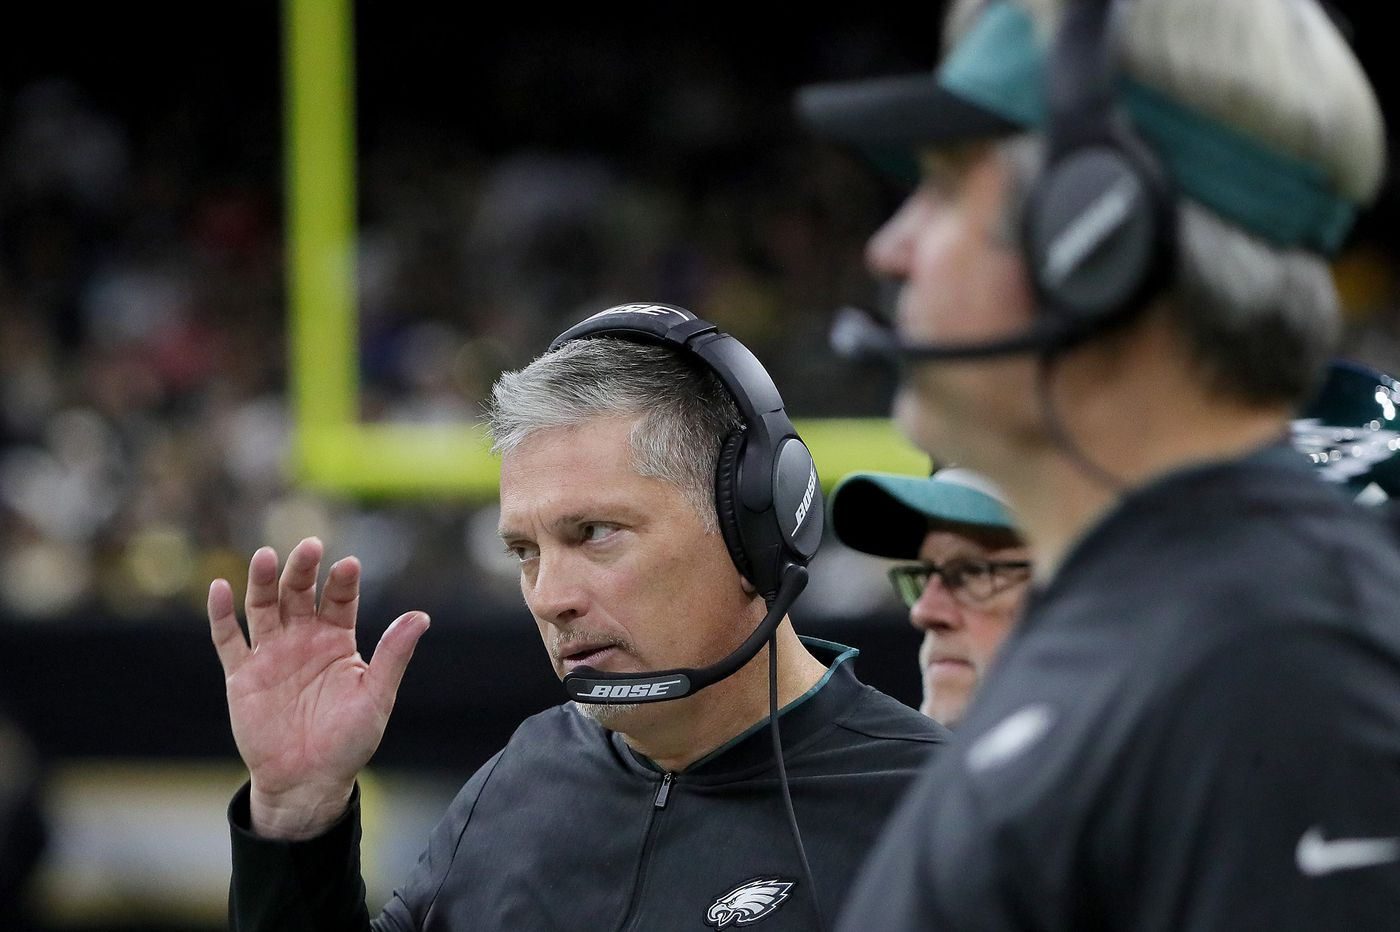 Doug Pederson, Jim Schwartz trending down; Josh Adams only bright spot in Eagles' loss to Saints